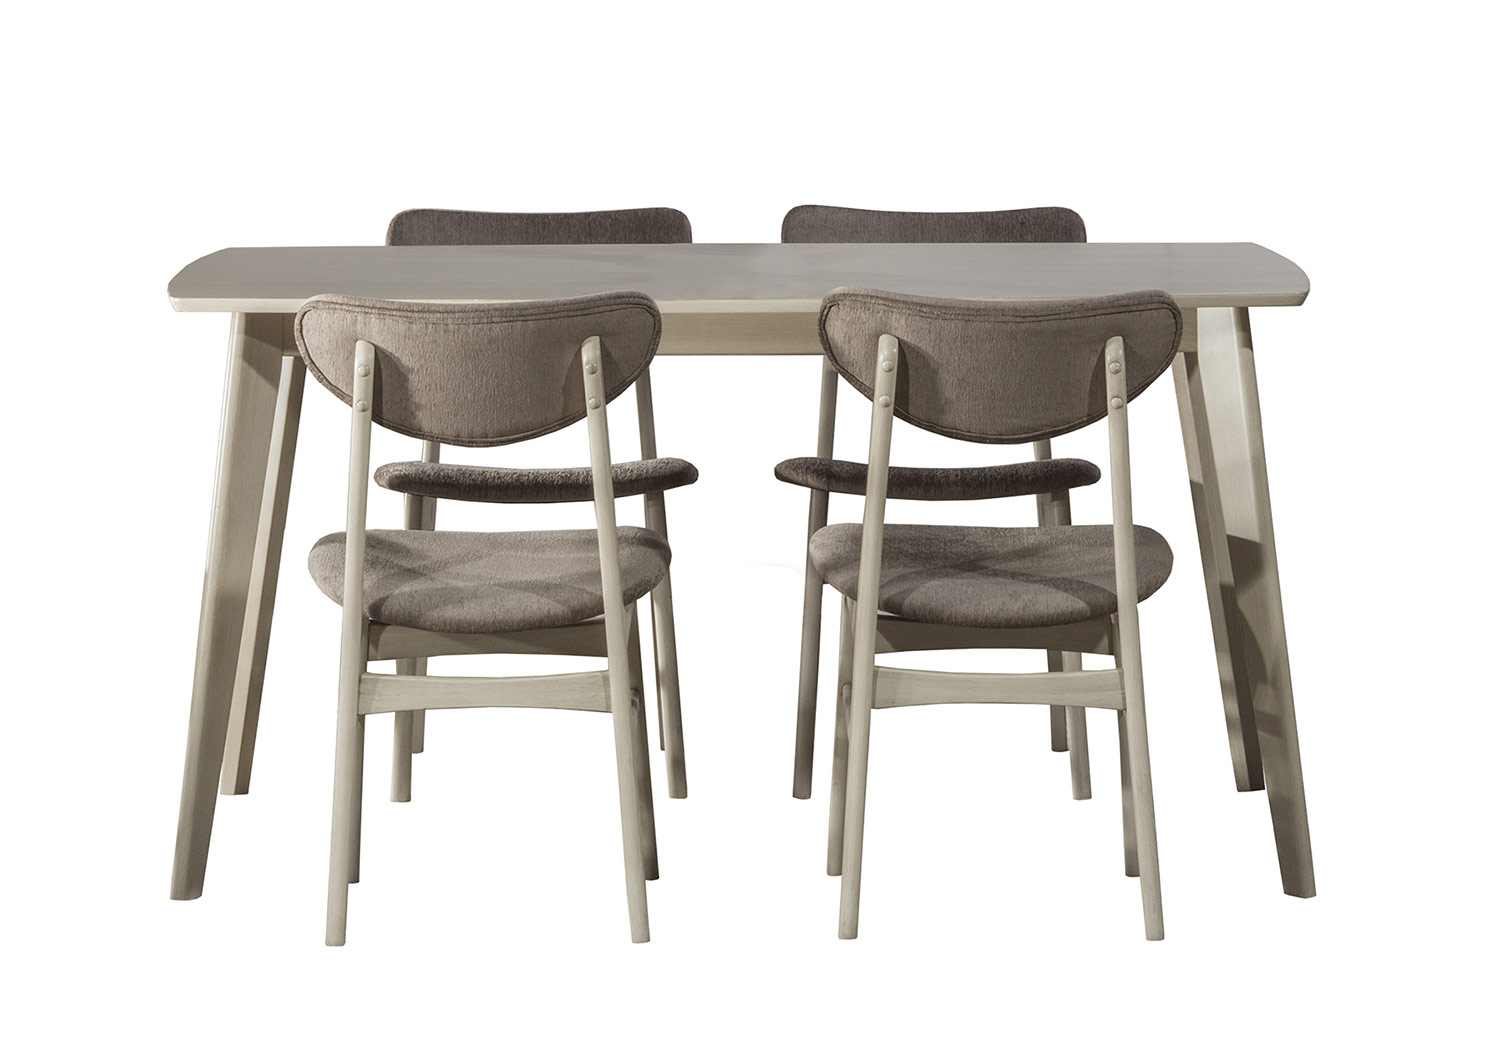 Hillsdale Bronx 5-Piece Rectangle Dining Set - Light Weathered Gray